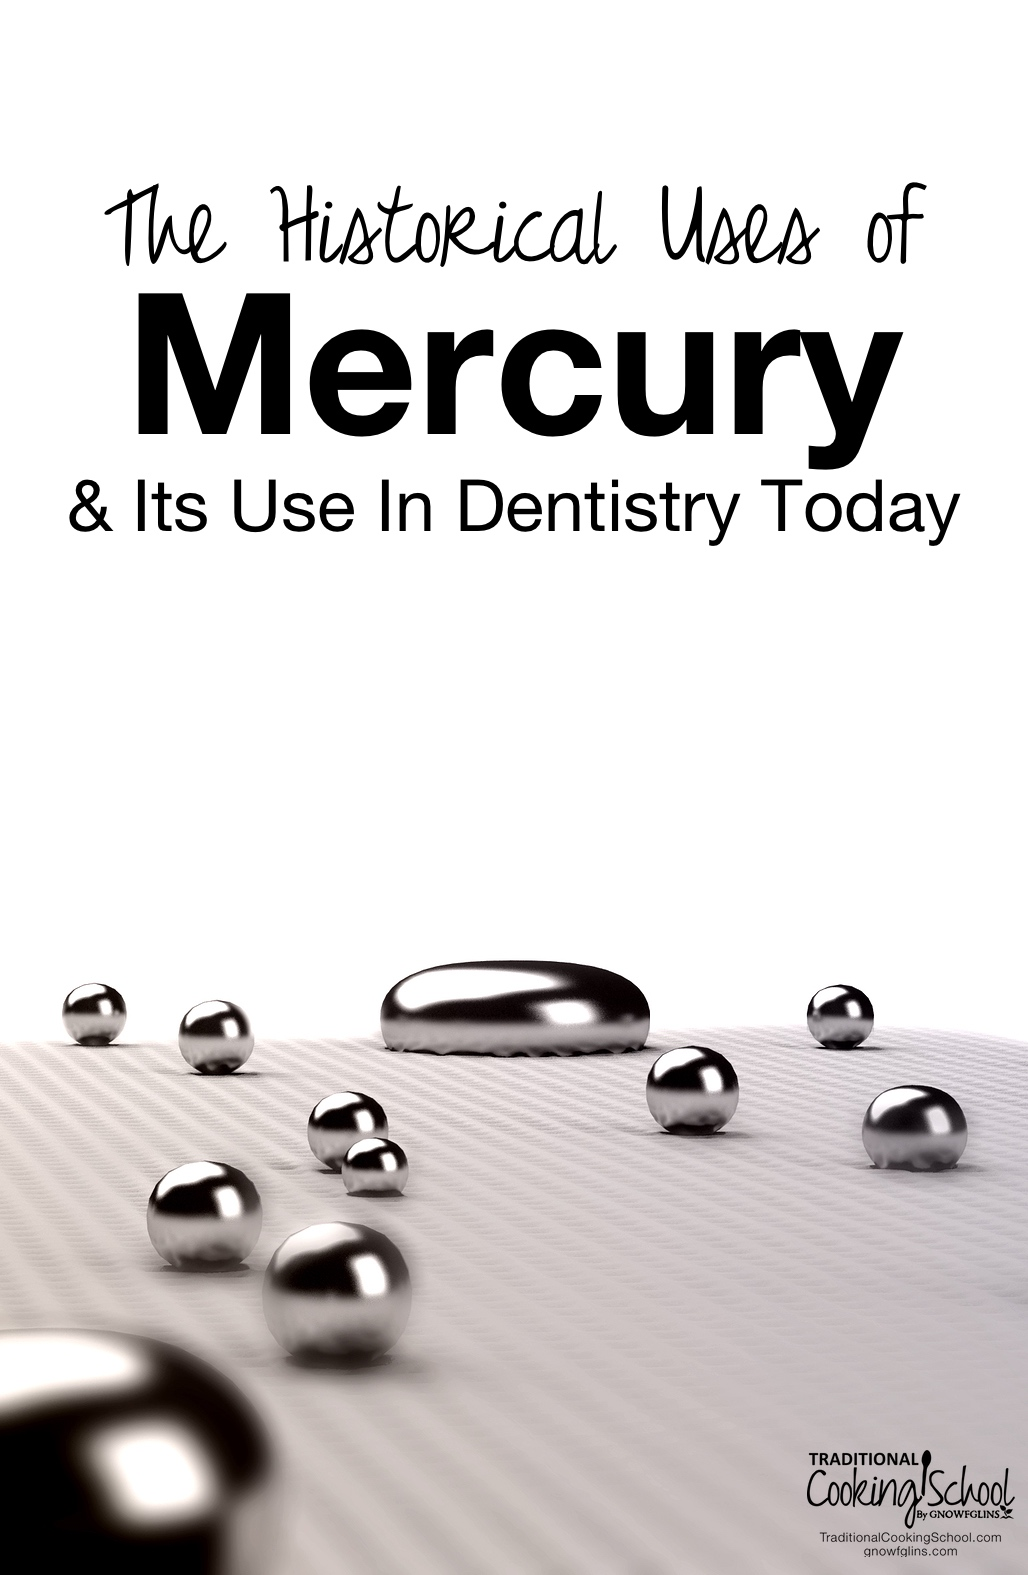 The Historical Uses Of Mercury & Its Use In Dentistry Today | 'Will you do a post about amalgam fillings and curing tooth decay? What do you think about biological dentistry? How can I find a dentist with a holistic practice?' asks Michelle A. To begin, let's talk about the historical uses of mercury and what various countries are doing today, as well as the FDA's confusing response to mounting evidence against the safety of mercury in dental fillings. | TraditionalCookingSchool.com